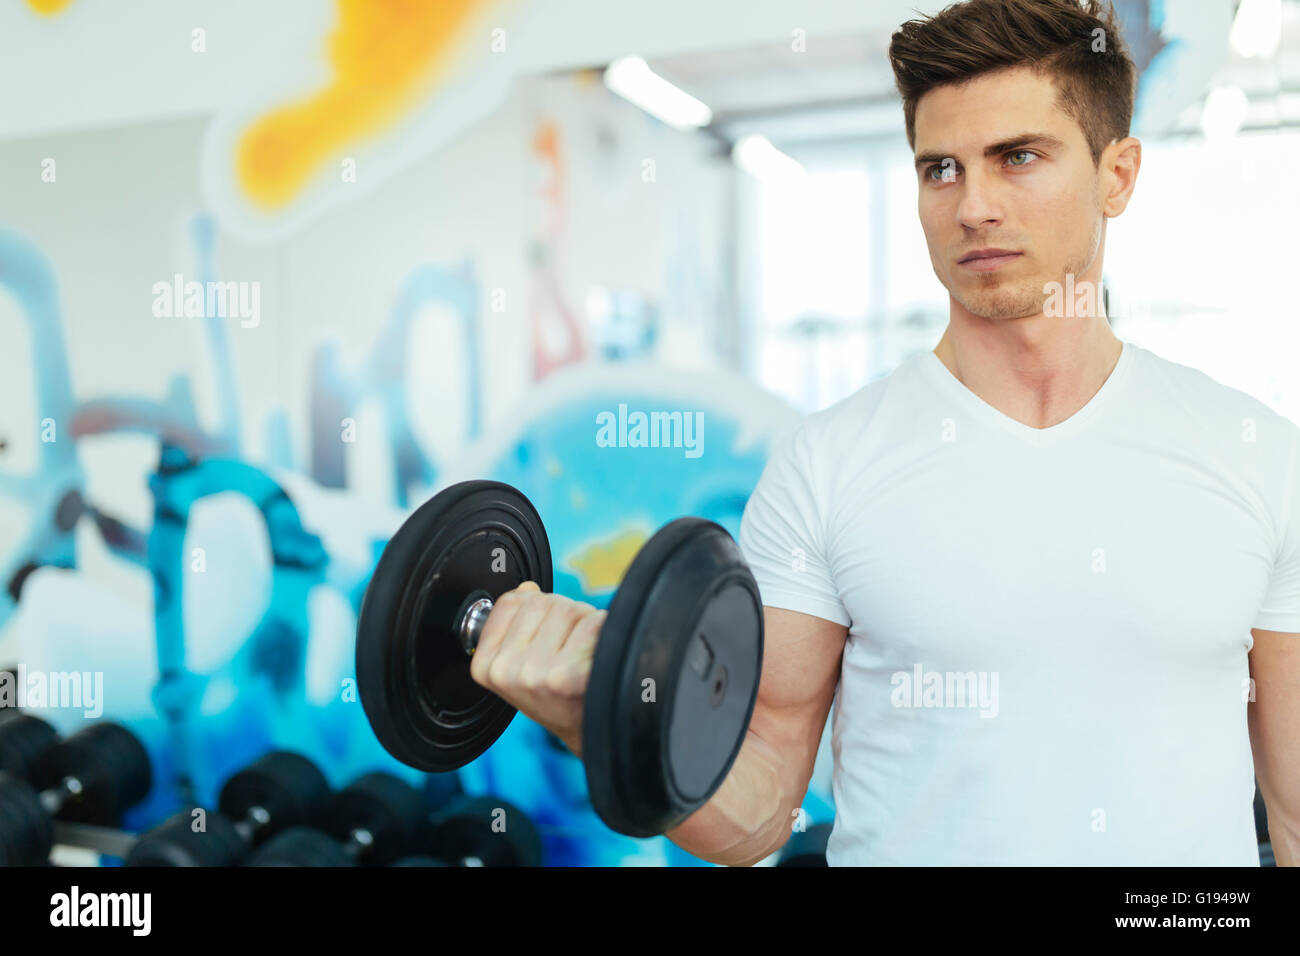 Handsome man lifting weights in gym et demeurer en forme Photo Stock